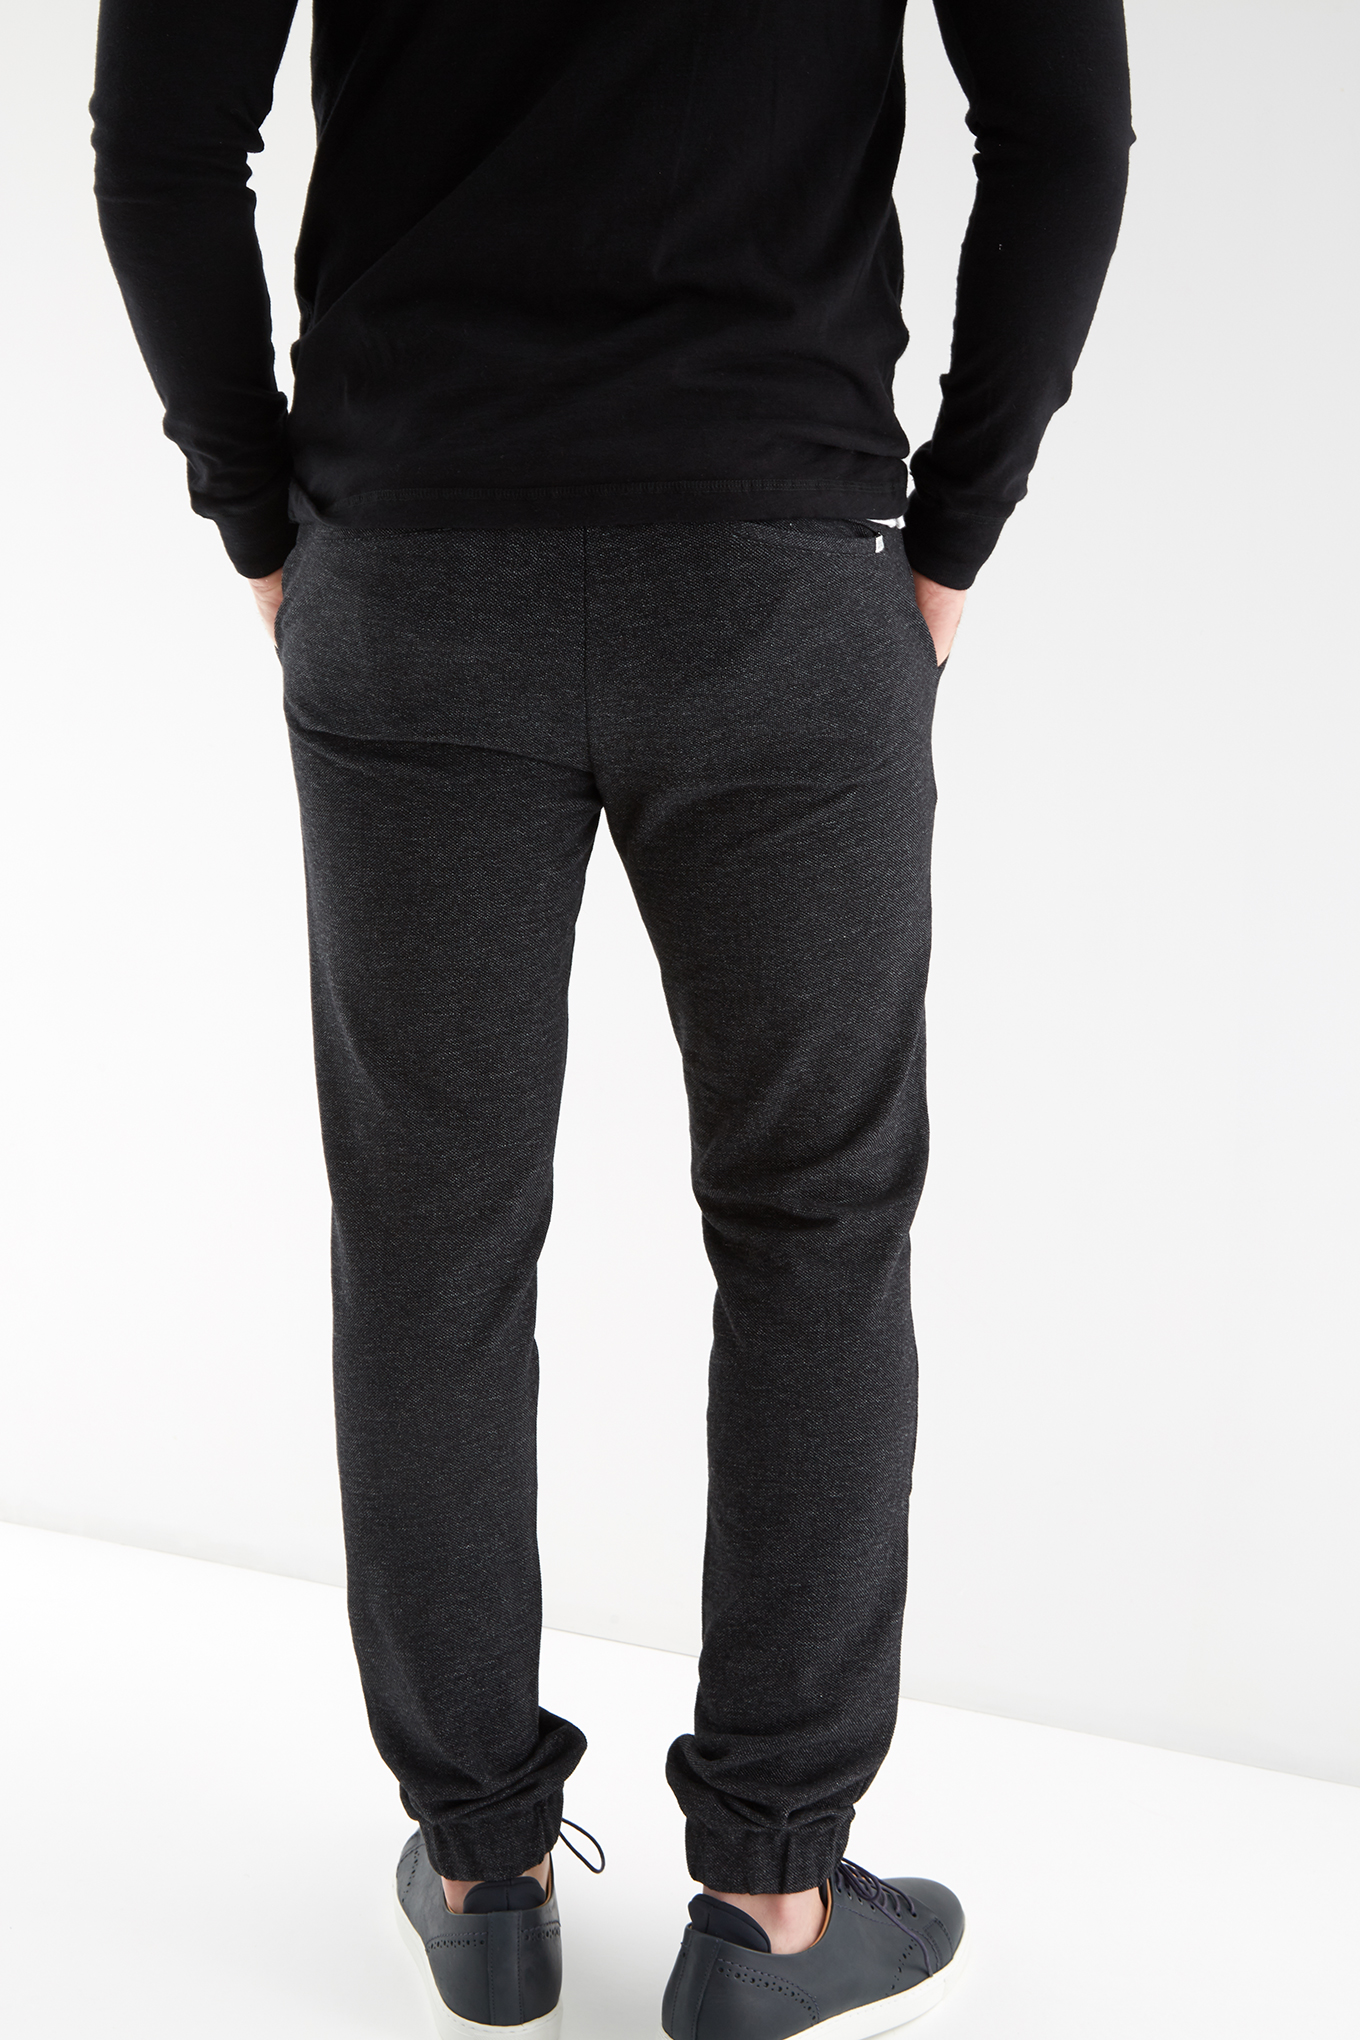 Sportswear Trousers Black Sport Man